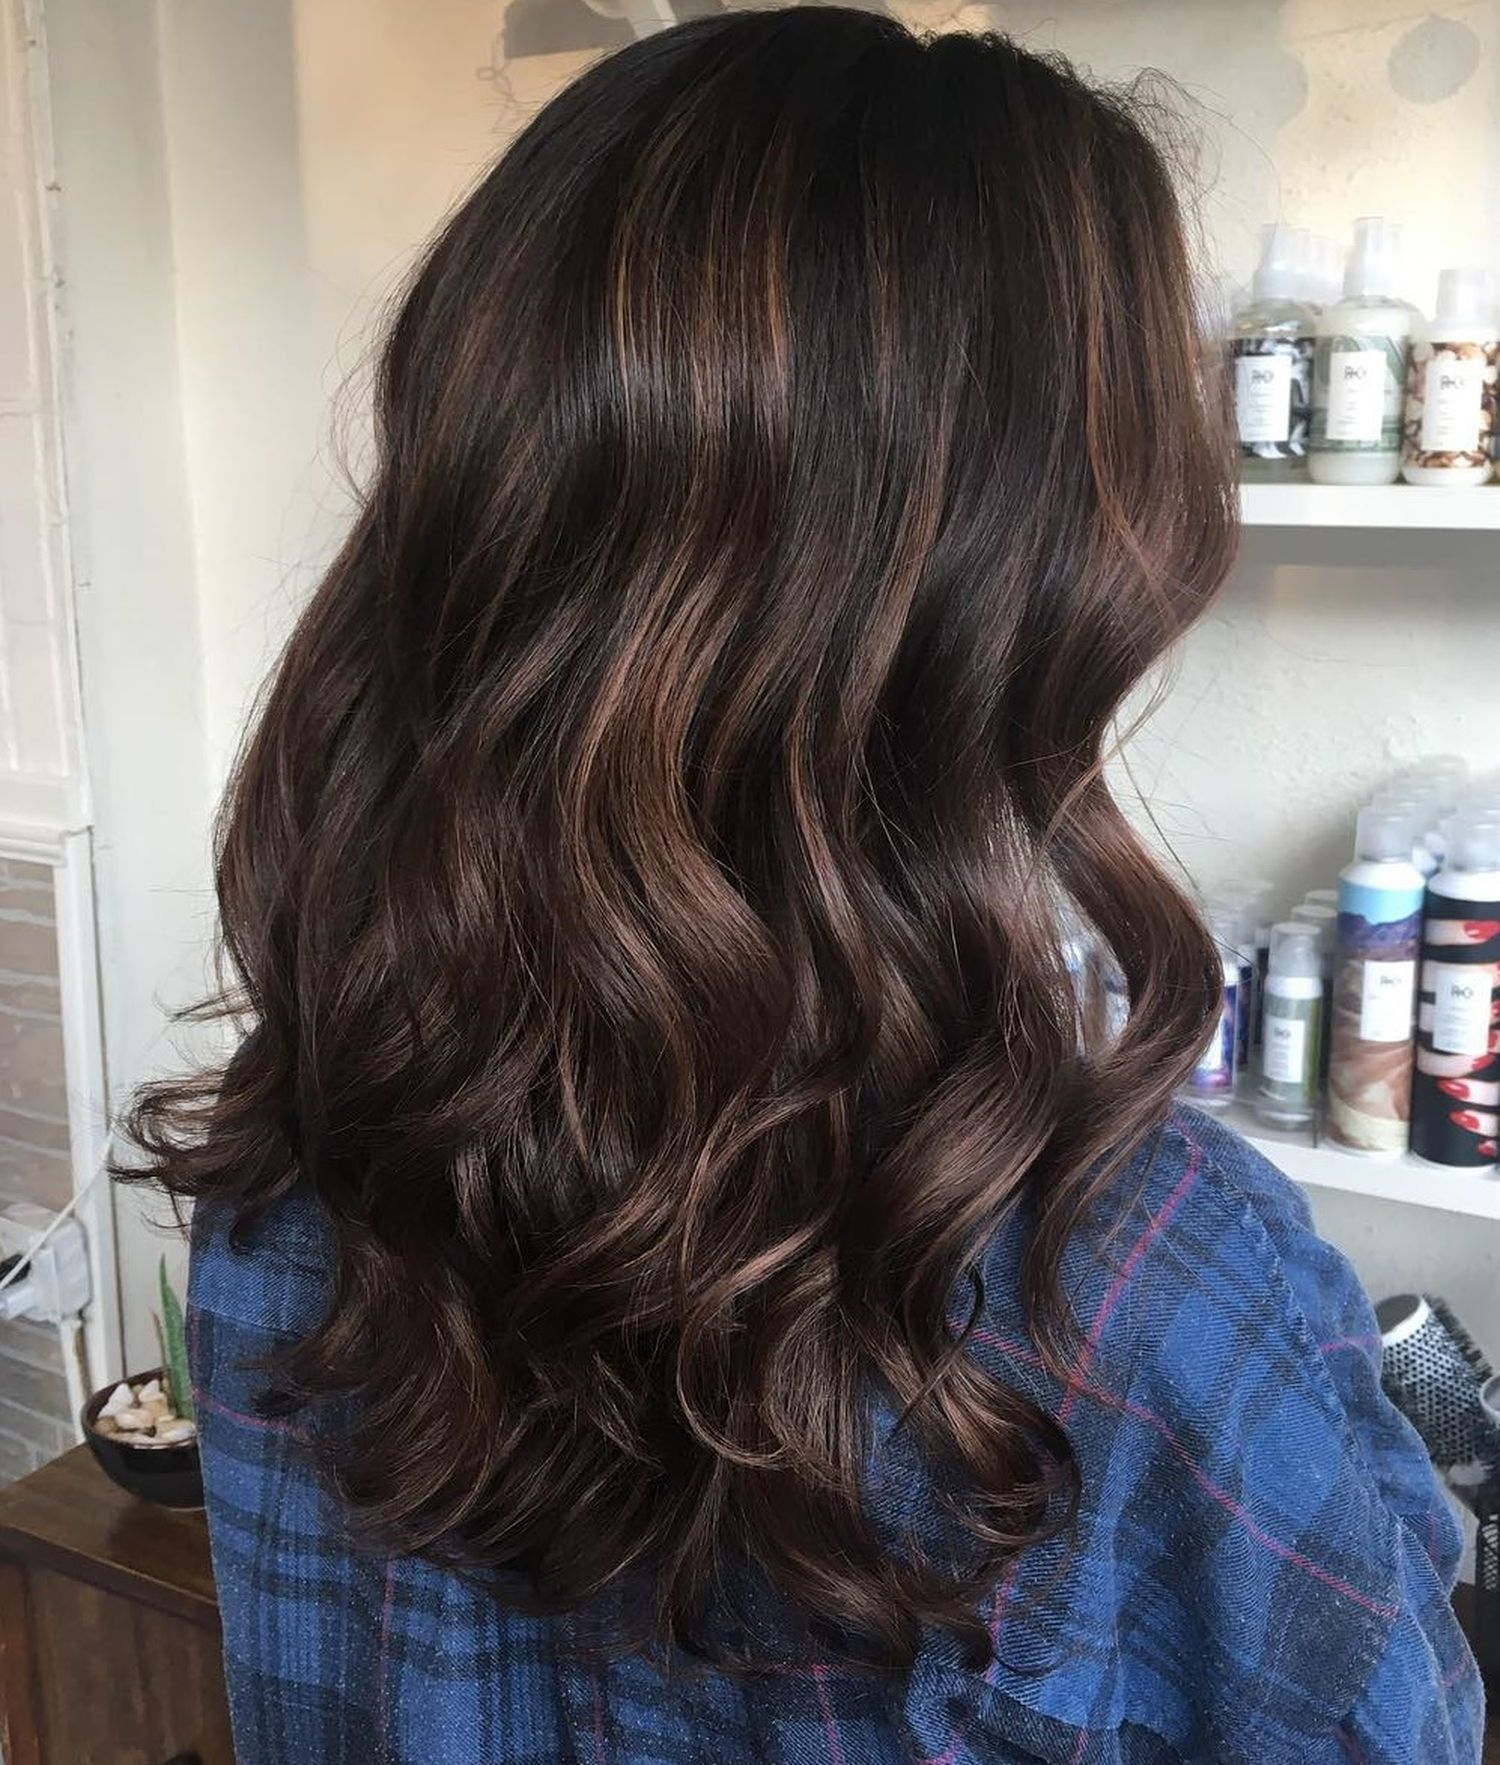 Brown Highlights For Curly Hair Brown Hair With Highlights Hair Highlights Curly Hair Trends